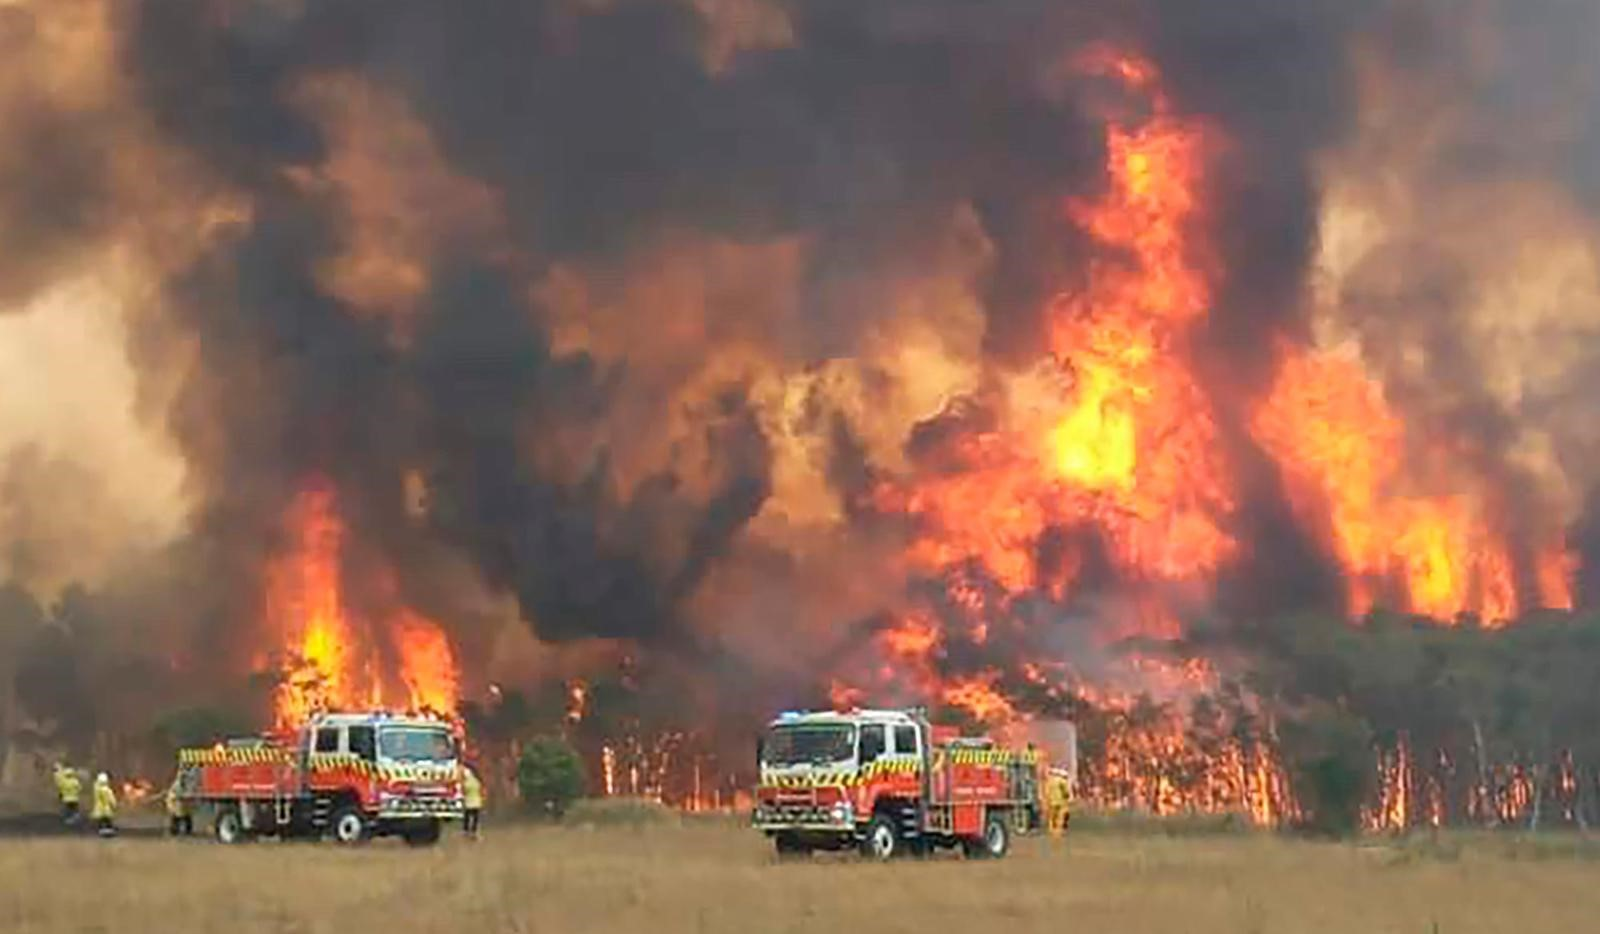 Australian bushfires raging and two fire engines in foreground